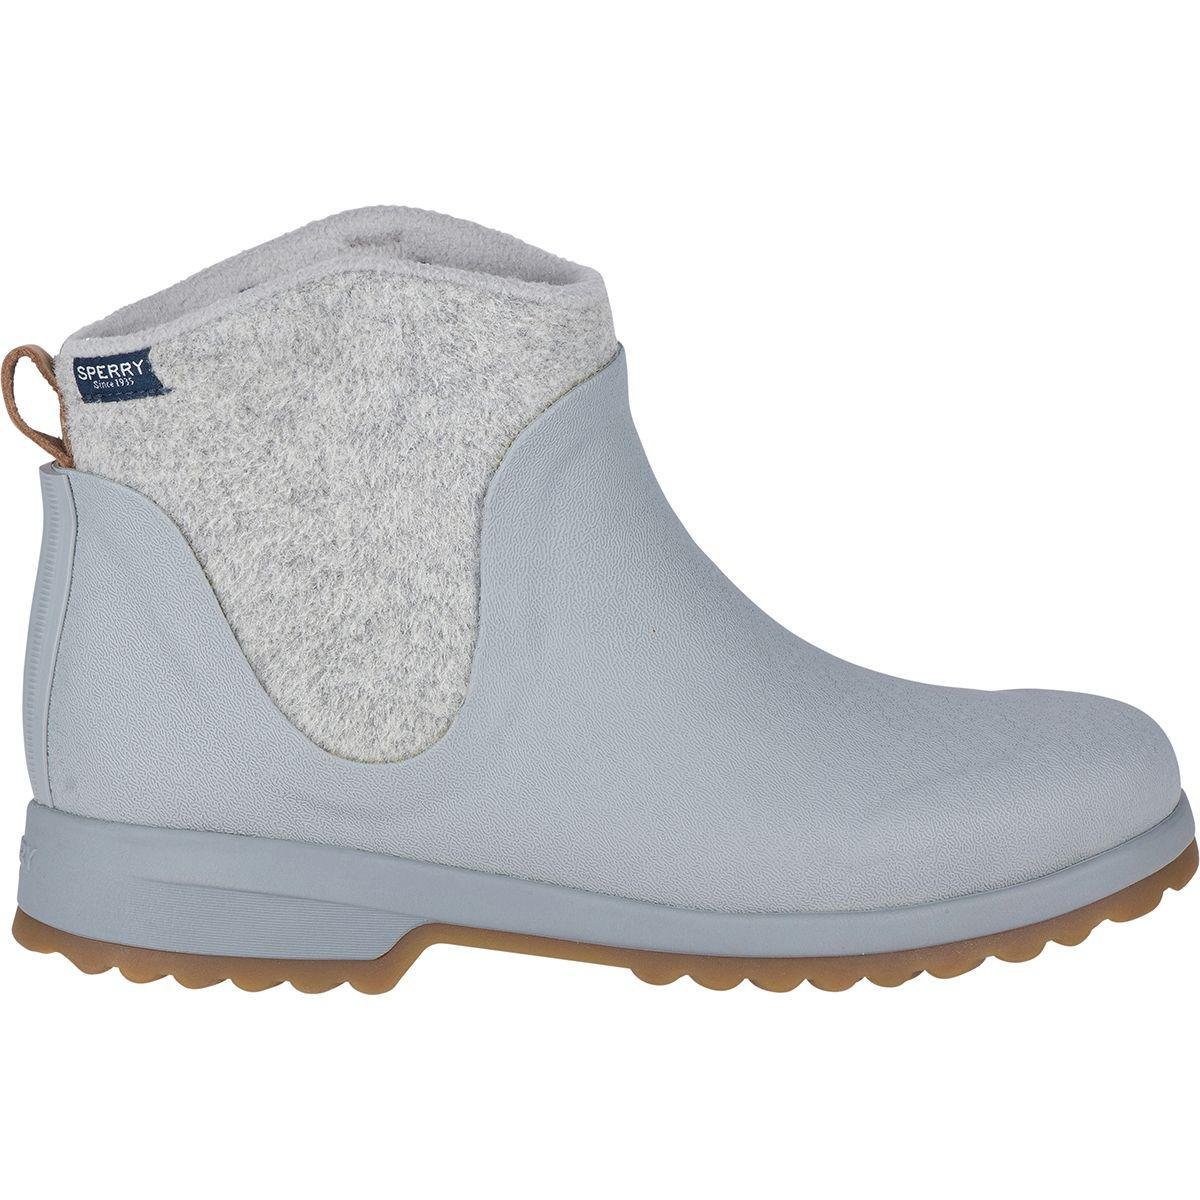 bbf025f8933a Lyst - Sperry Top-Sider Maritime Gale (grey) Women s Boots in Gray ...